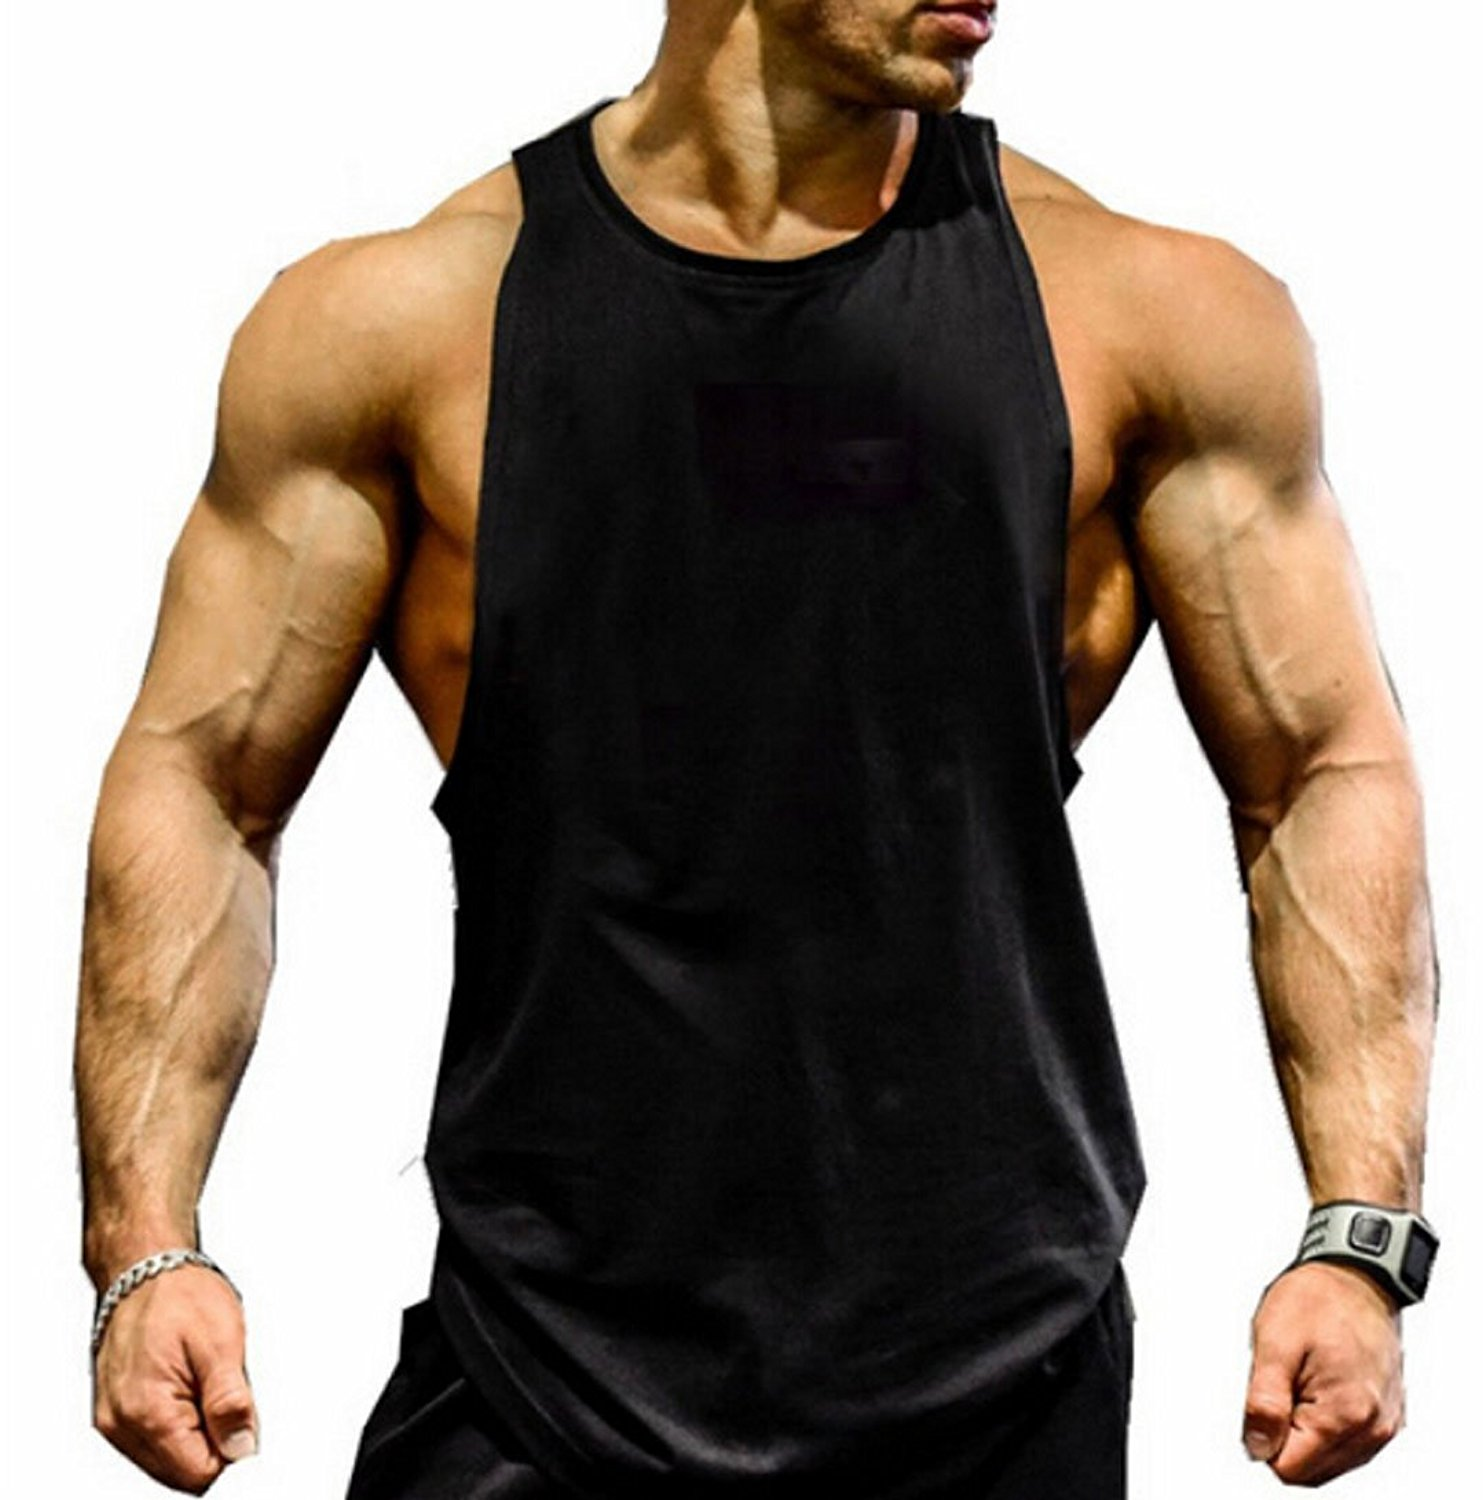 45a694e19cc4f Get Quotations · Zaaale Men Muscle Fitness Gym Stringer Tank Tops  Bodybuilding Workout Sleeveless Shirts